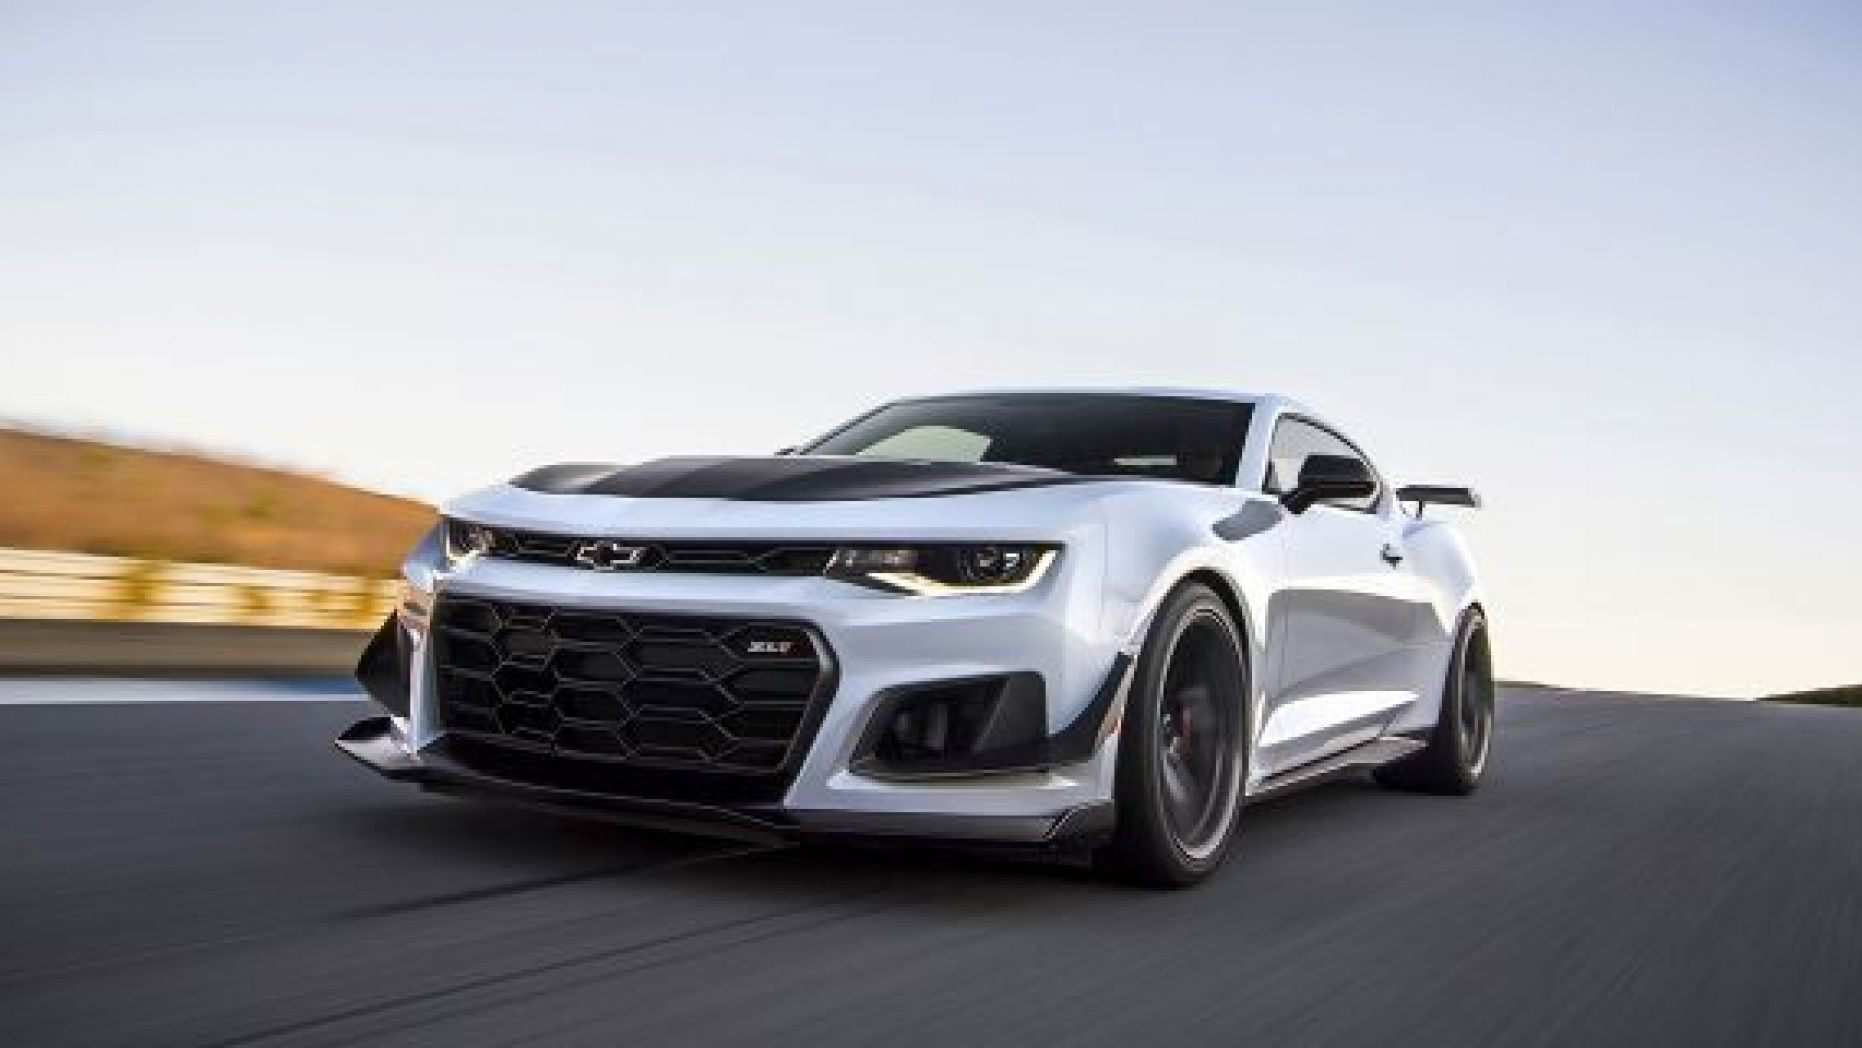 69 Best Review 2020 Chevrolet Camaro Zl1 1Le Exterior for 2020 Chevrolet Camaro Zl1 1Le